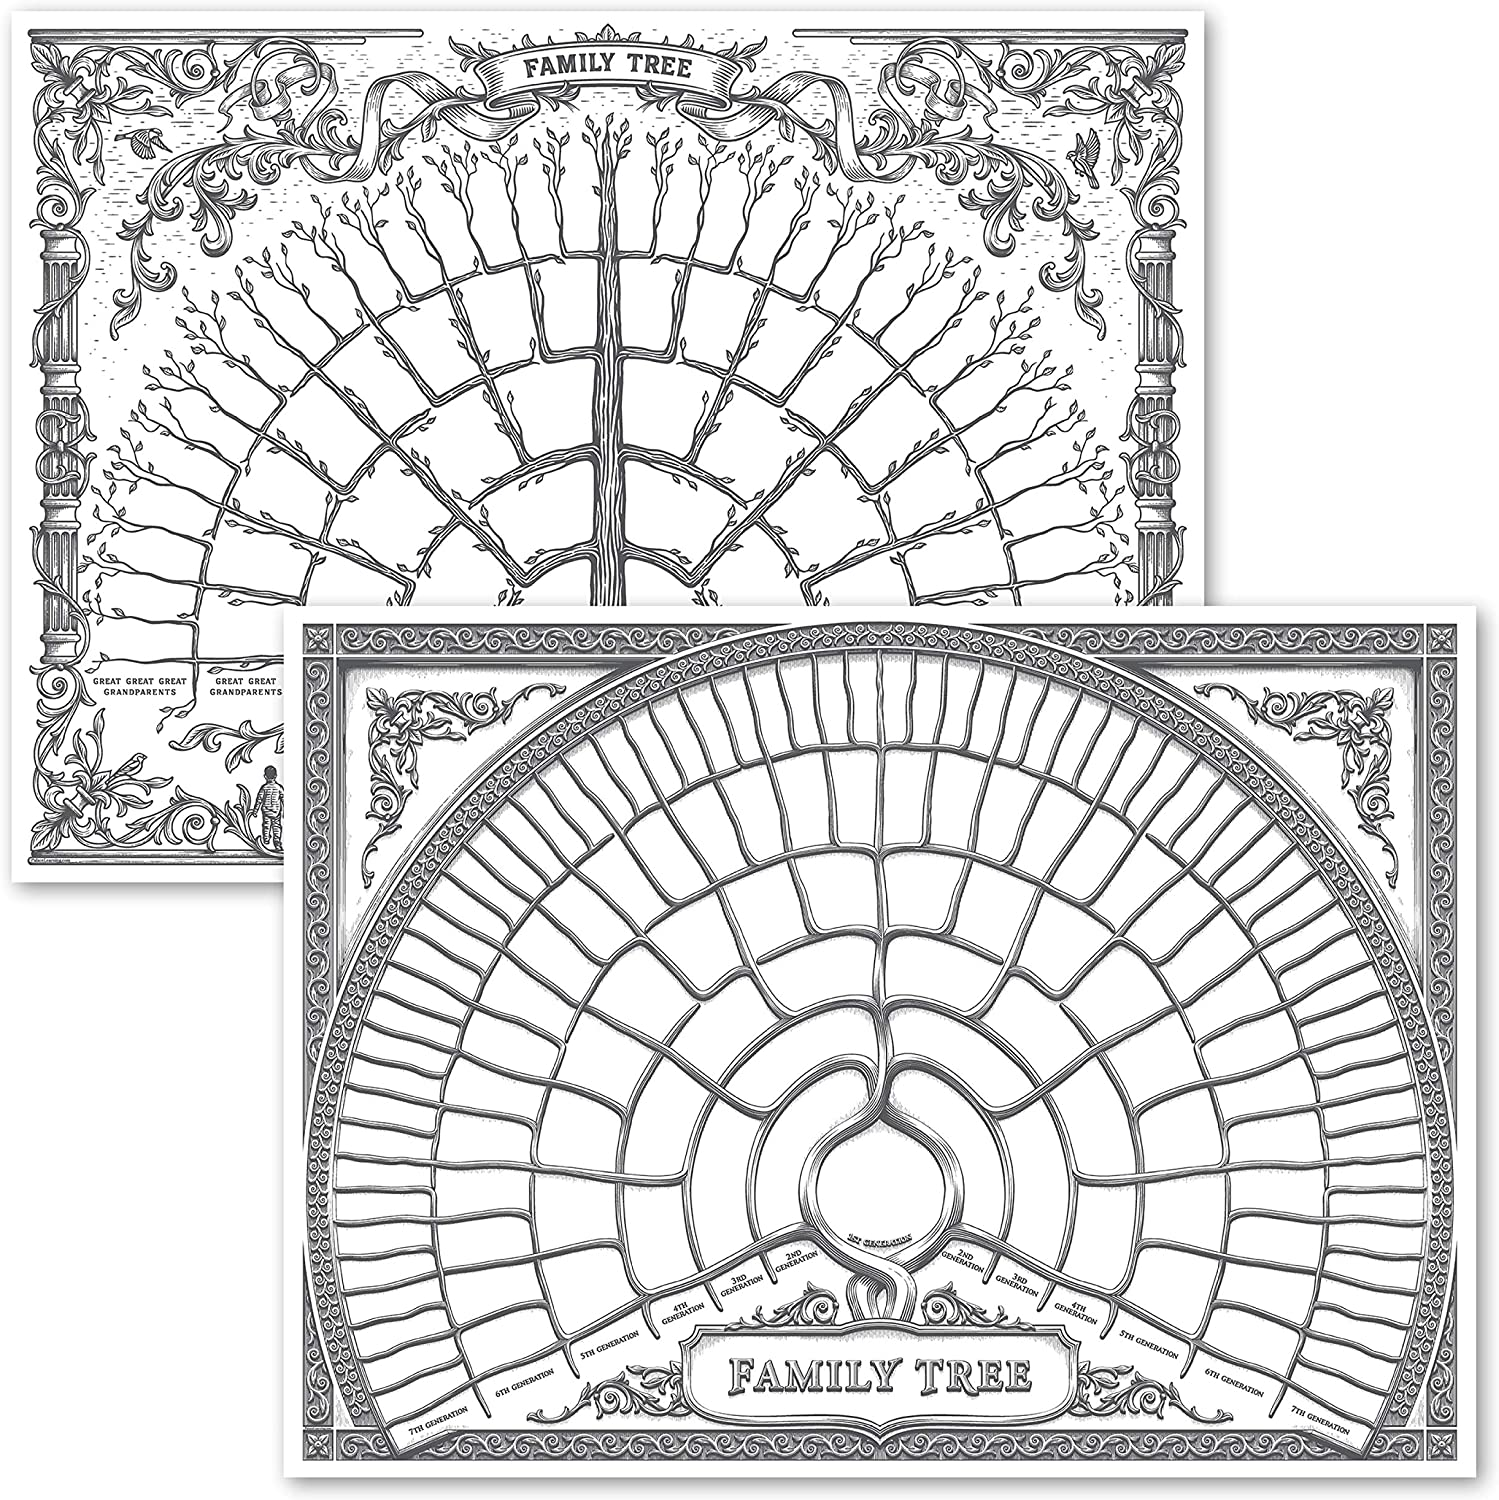 18 x 24 Blank Fillable Ancestry Chart 2 Pack Version 1 /& 2 Family Tree Charts to Fill in- 6 Generation Genealogy Poster